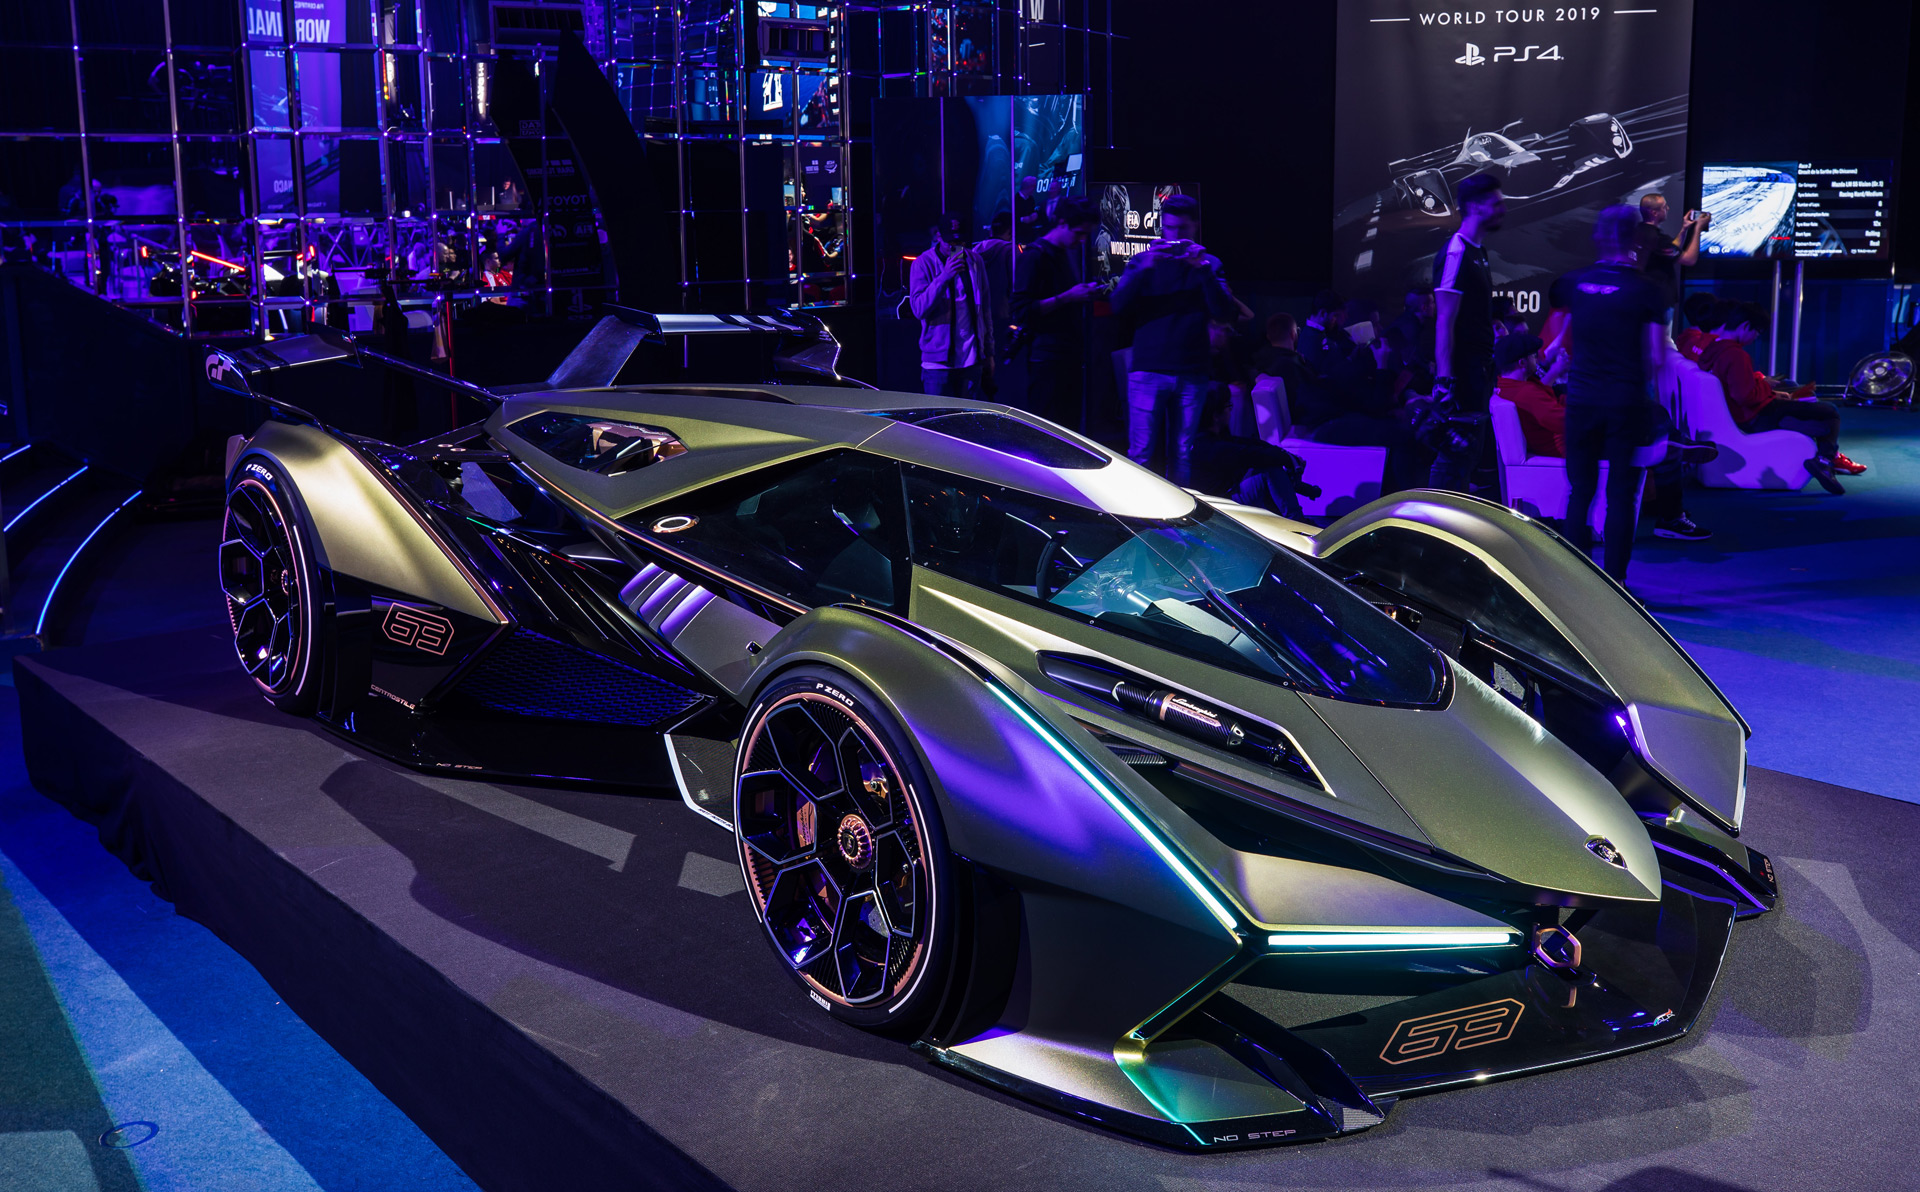 Lambo V12 Vision Gran Turismo is a single-seater from the ...